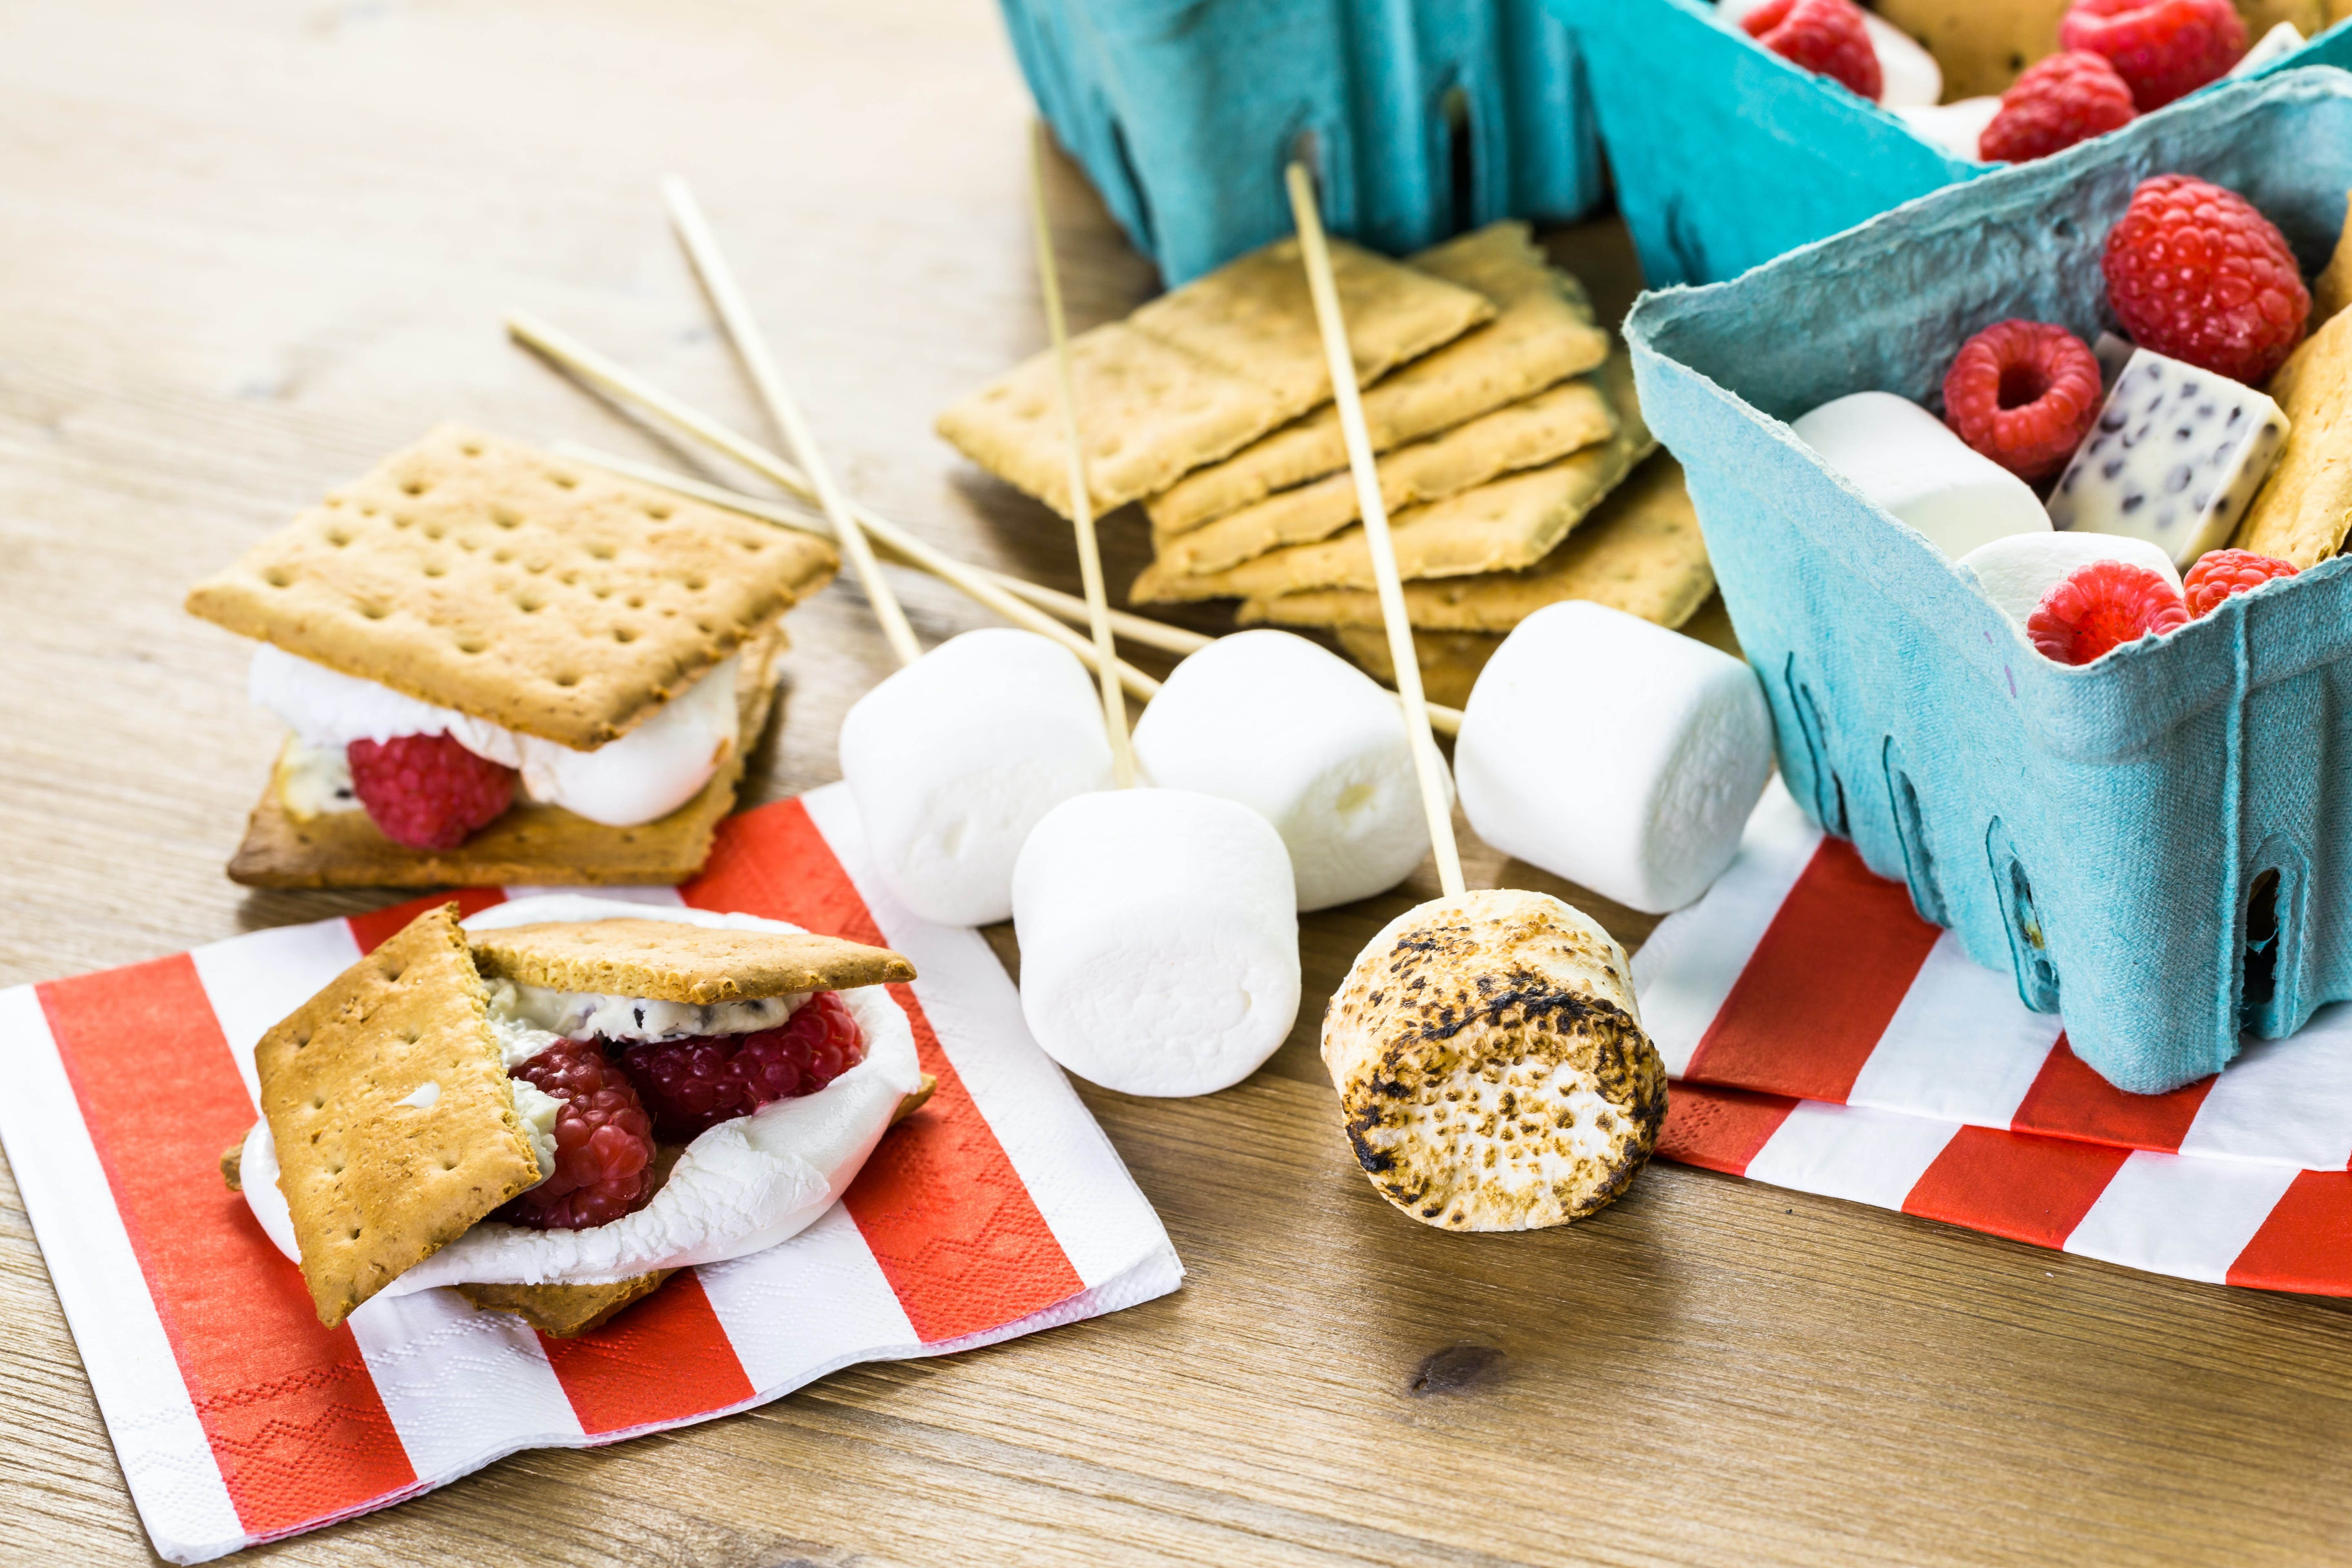 Summer Festival S'mores